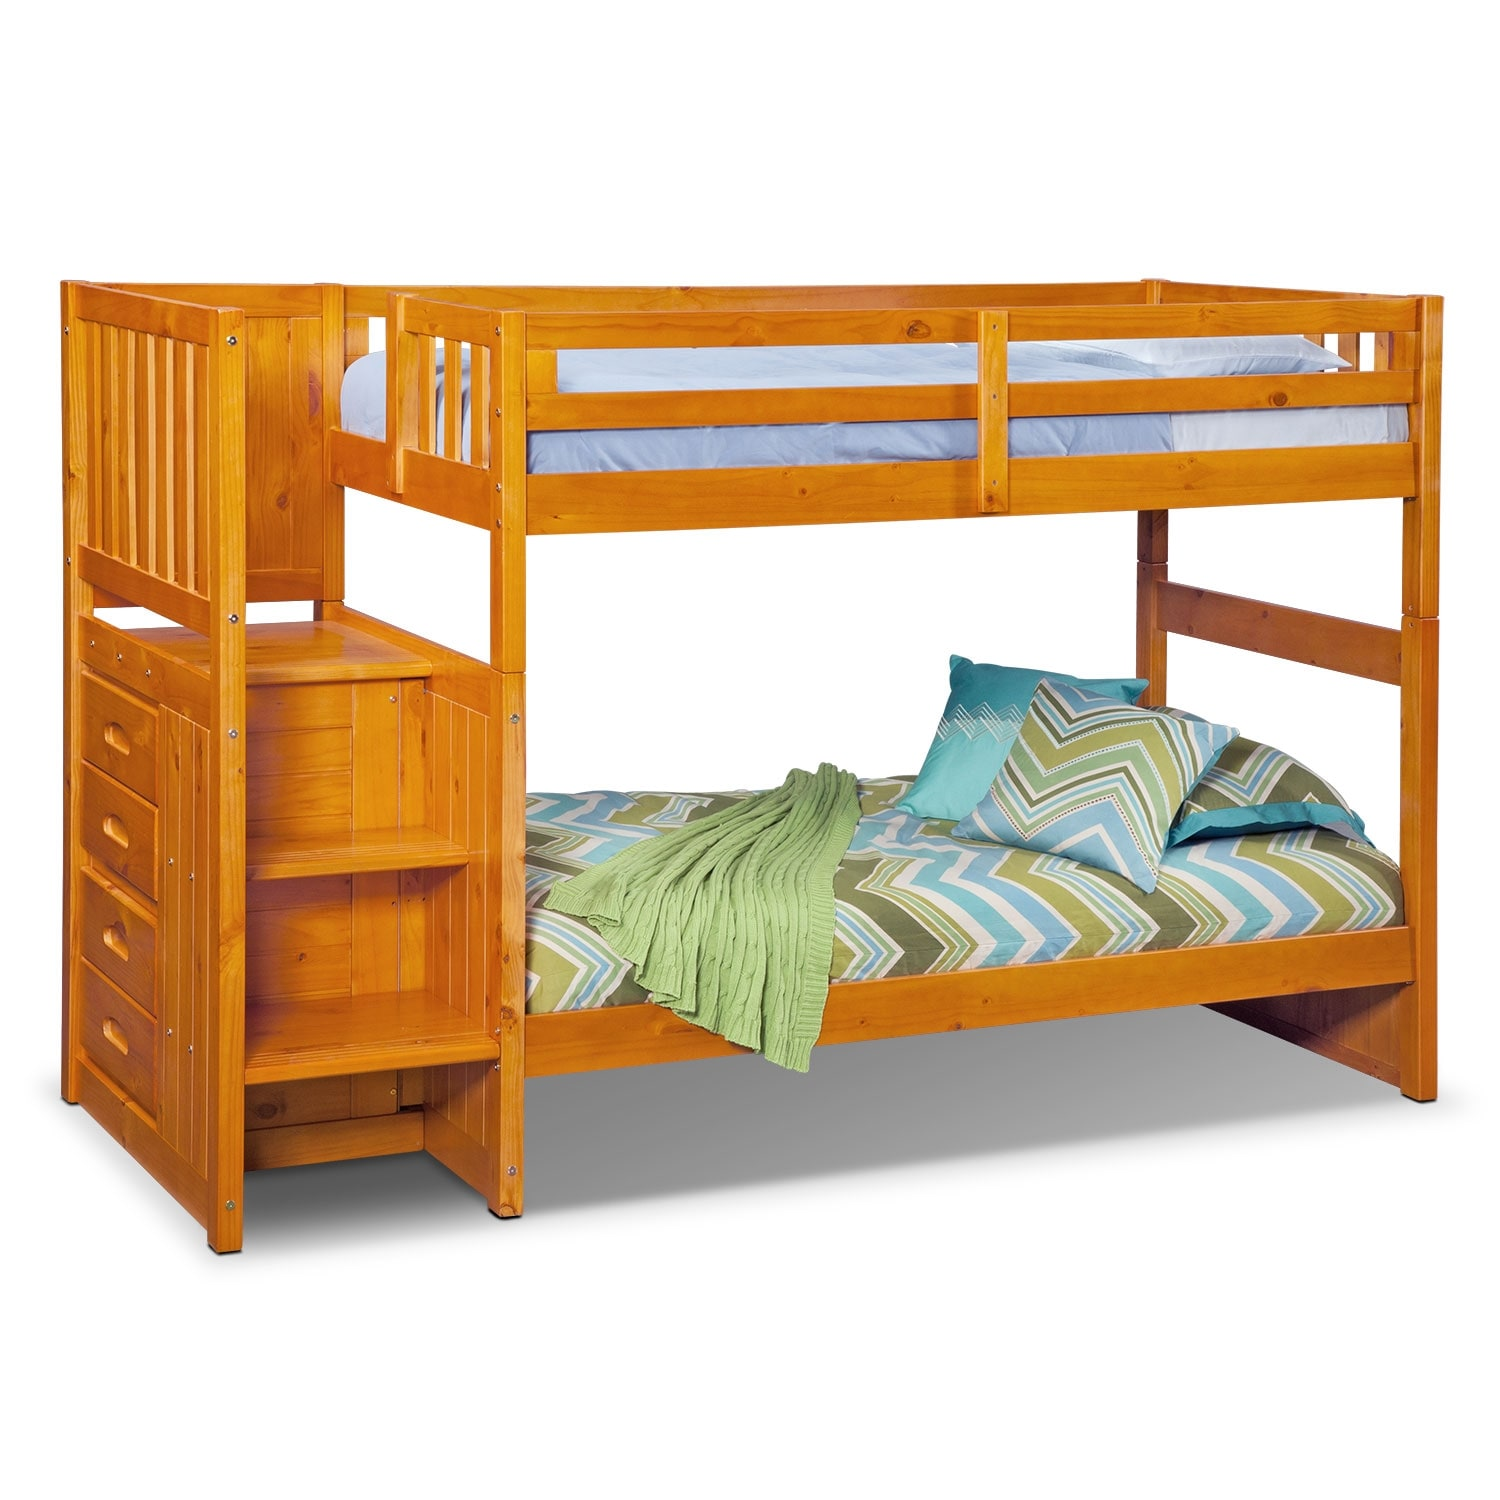 Ranger pine twin twin bunk bed w stairs and 4 drawer storage value city furniture - Bunkbeds with drawers ...